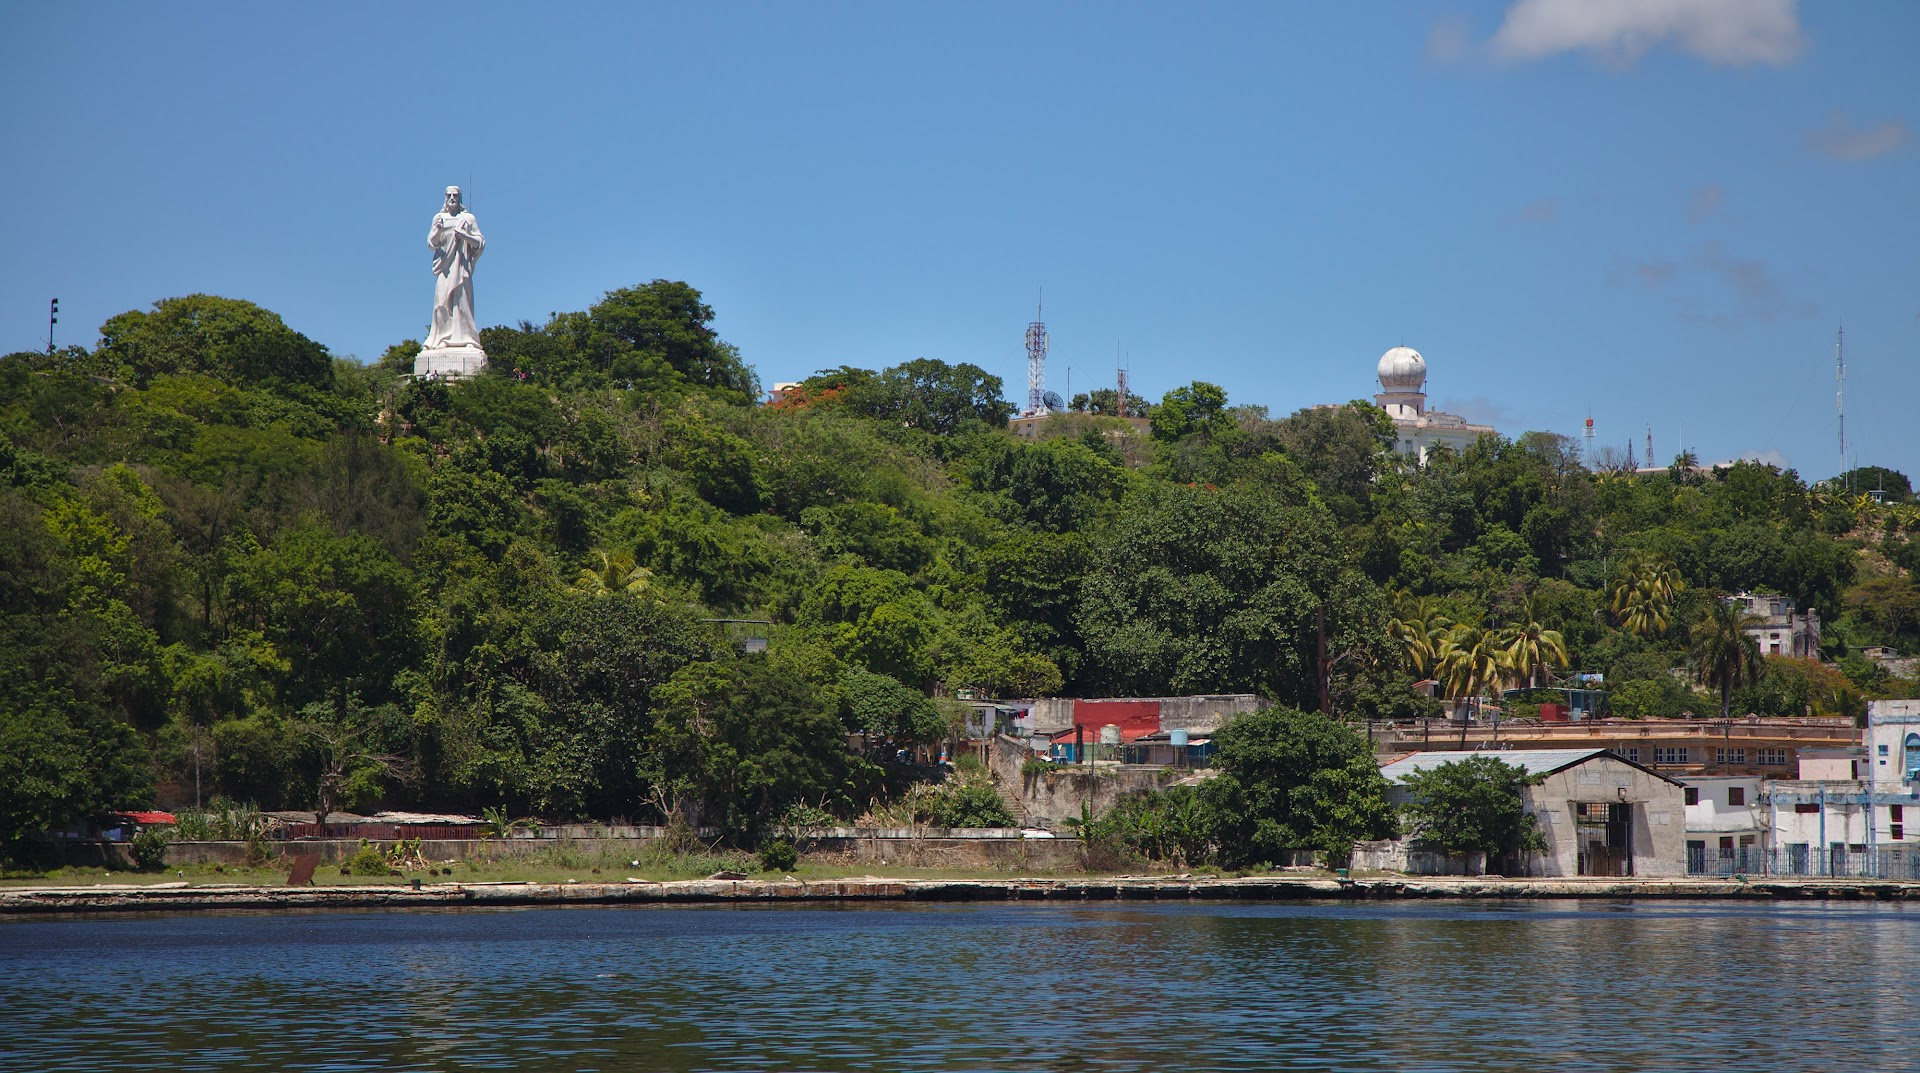 El Cristo, also in Havana